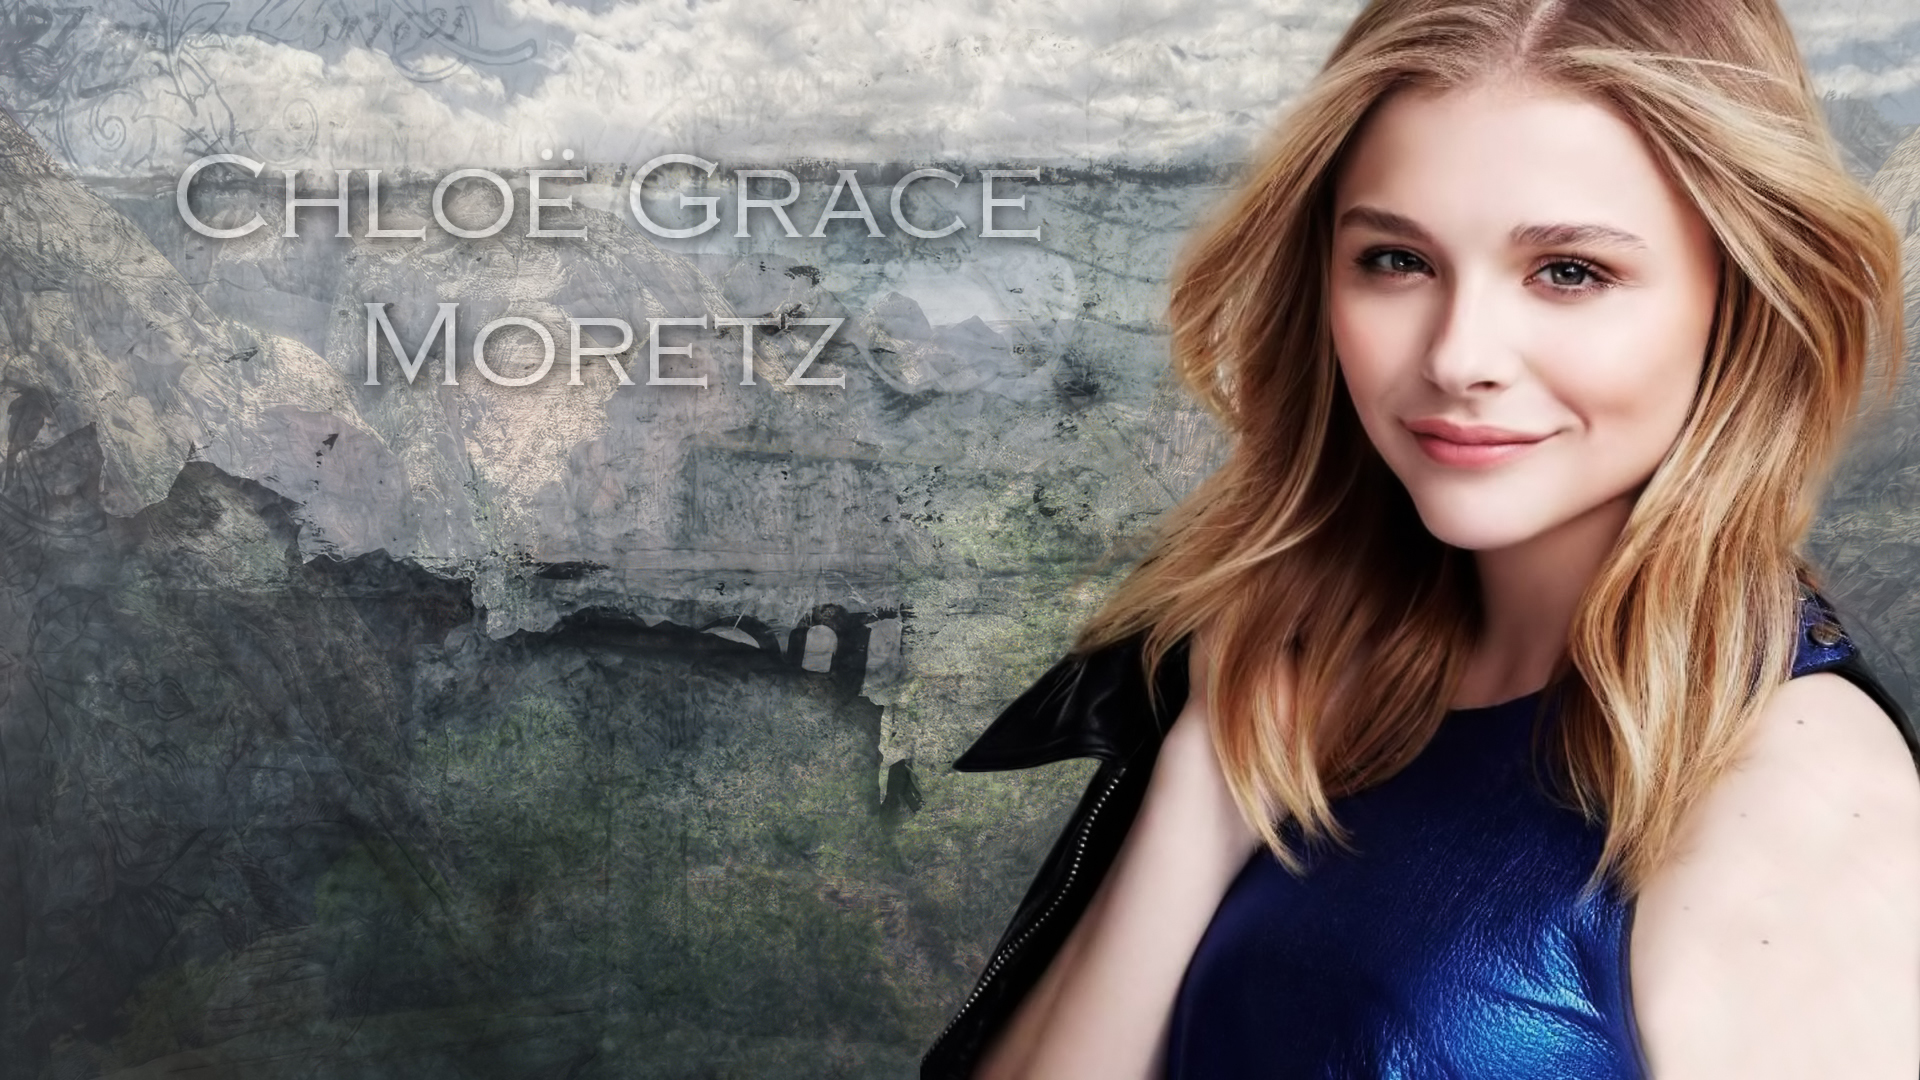 chloe moretz wallpapers images photos pictures backgrounds